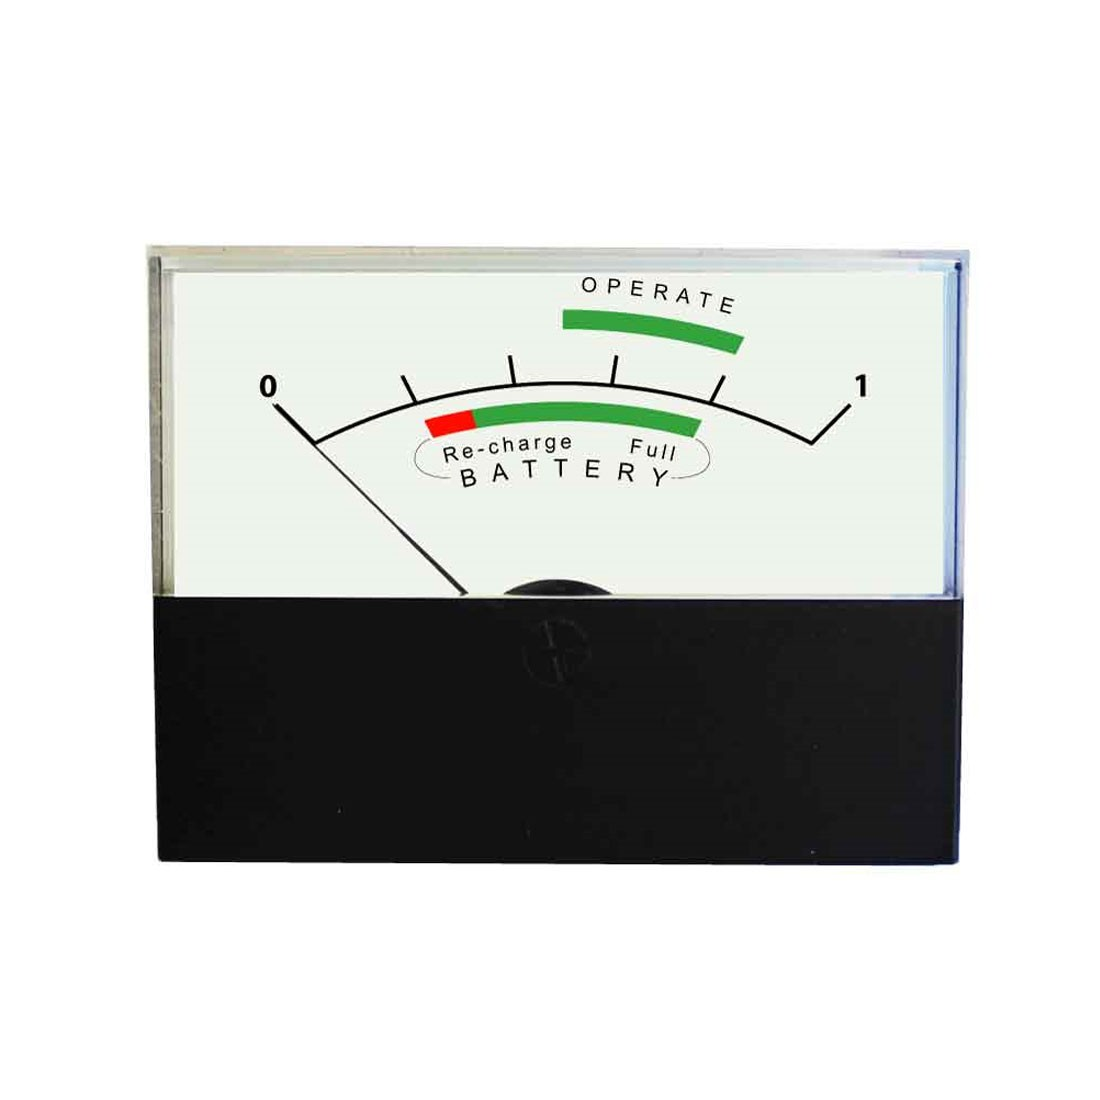 HST-57 Series AC or DC Analog Panel Meter